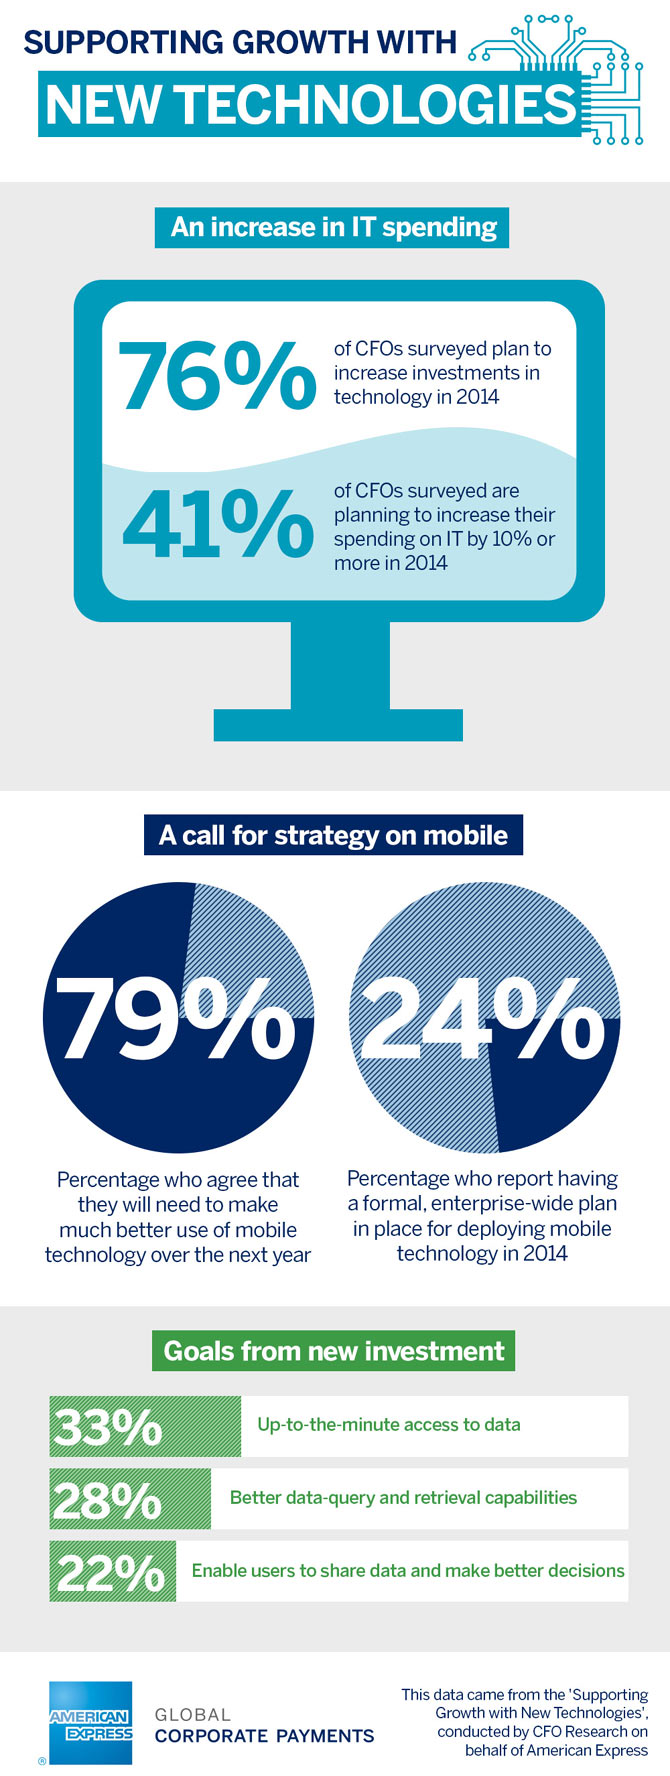 New survey from american express reveals power of technology, as 76% of uk cfos plan to increase investment in 2014